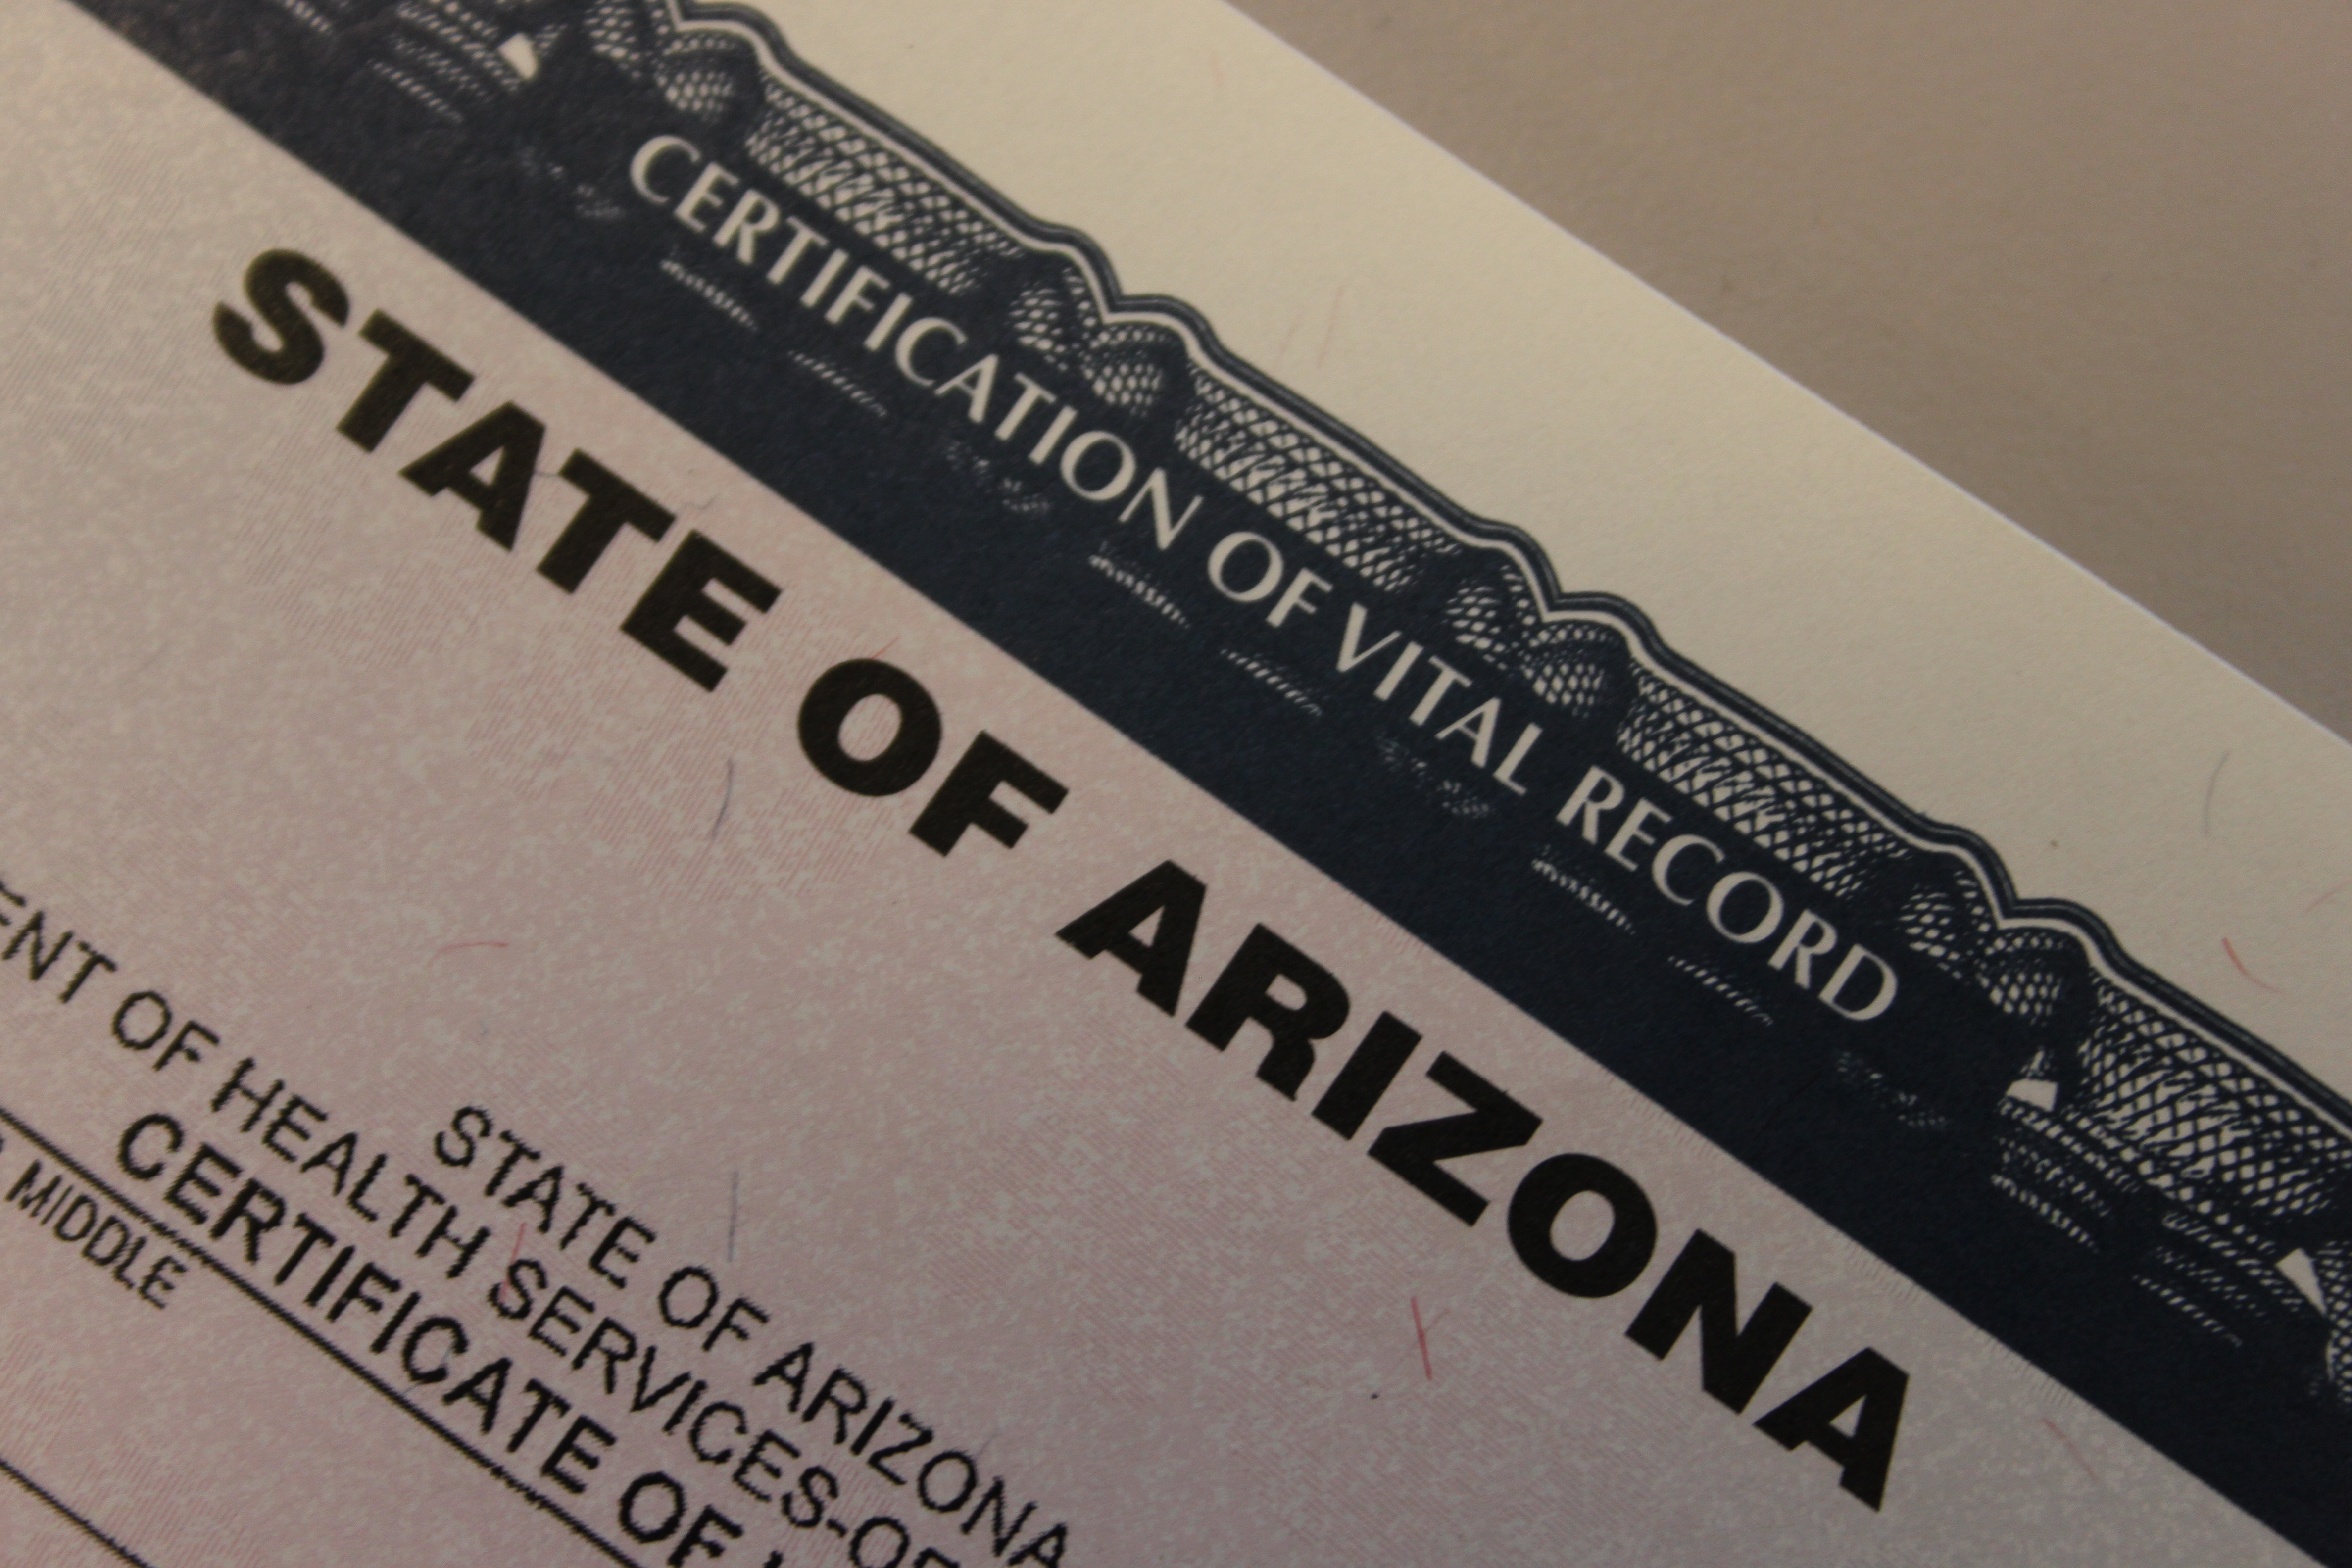 New online death registration system goes live az dept of the arizona department of health services bureau of vital records adhs operates multiple statewide electronic systems that enable adhs and our partners 1betcityfo Images